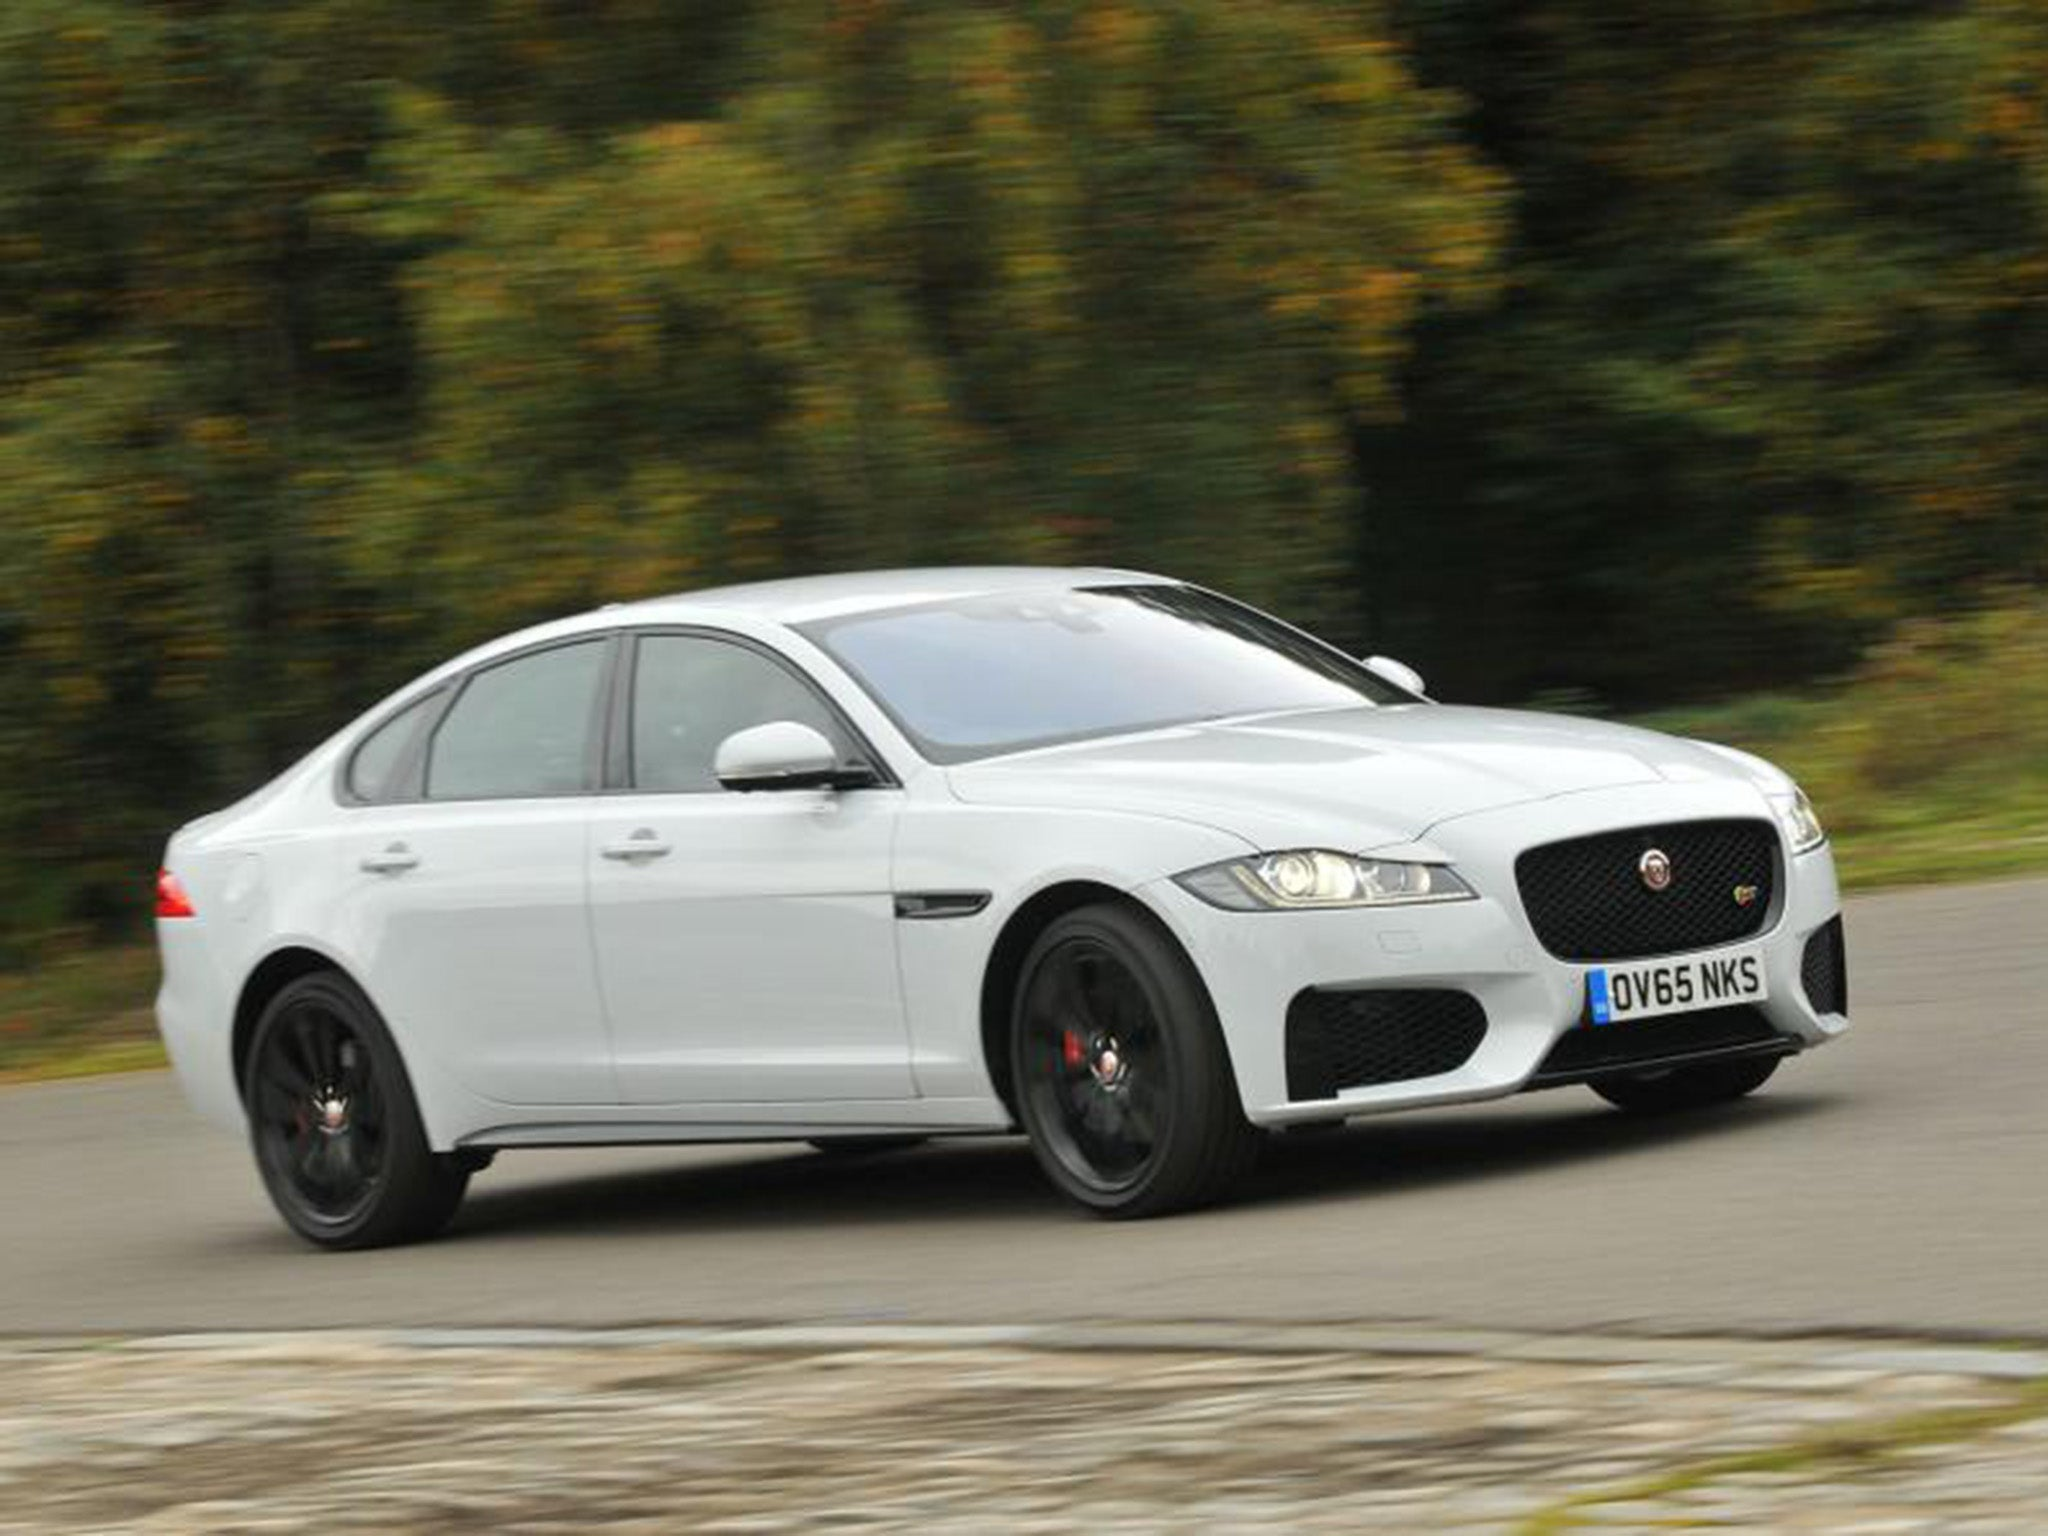 2015 jaguar xf 3 0 tdv6 s uk car review the new exec proves itself on british roads and hits. Black Bedroom Furniture Sets. Home Design Ideas